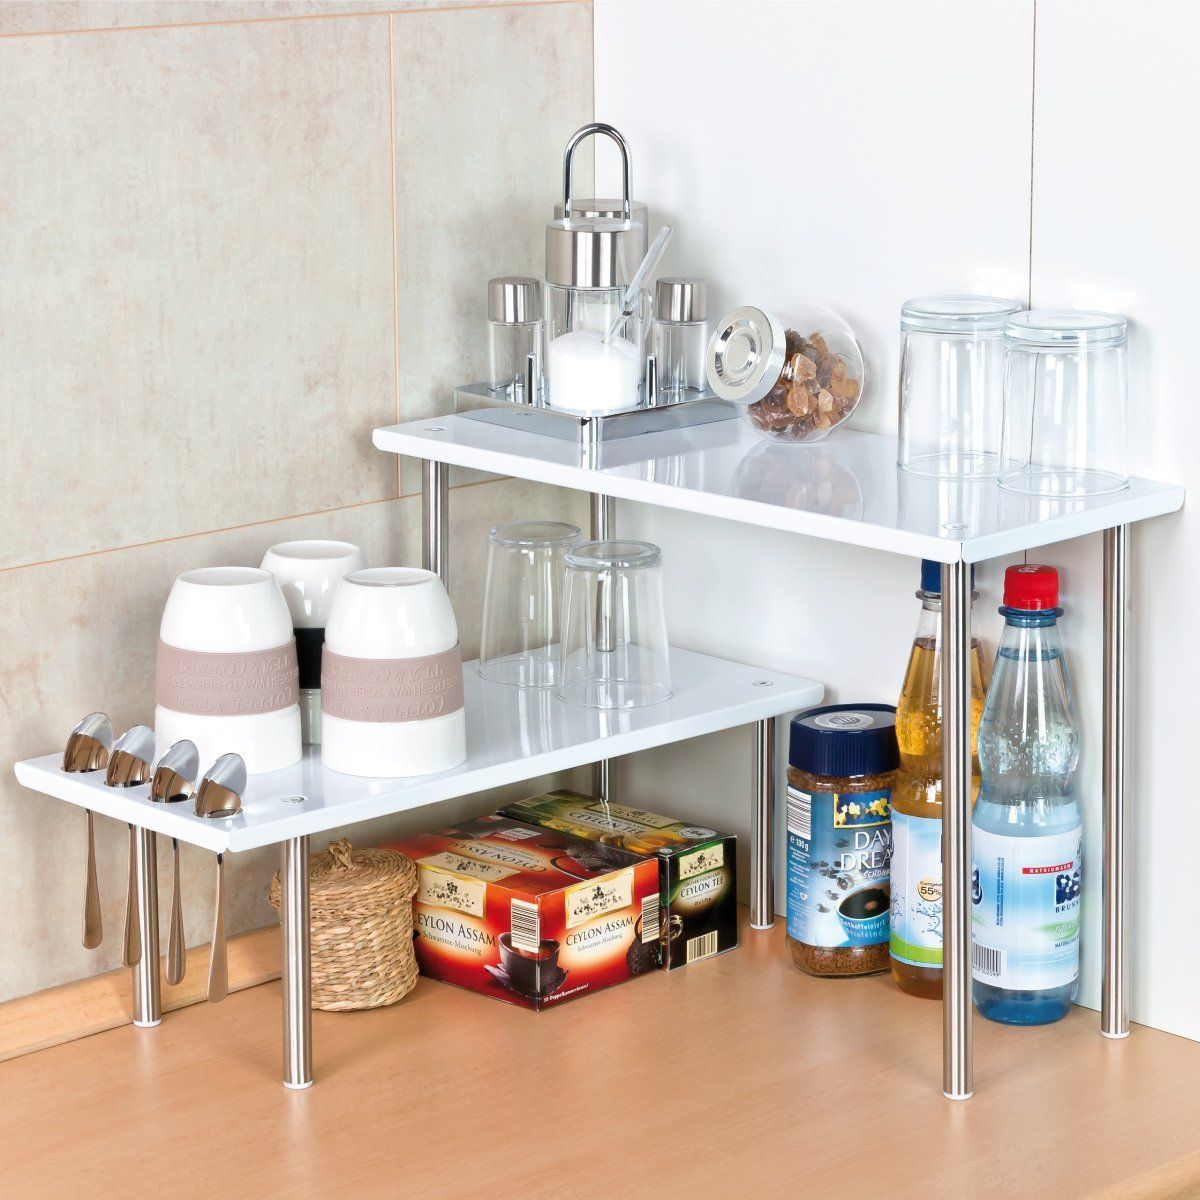 Bremermann® Kitchen Corner Shelving Unit, Kitchen Shelves, Spice ...